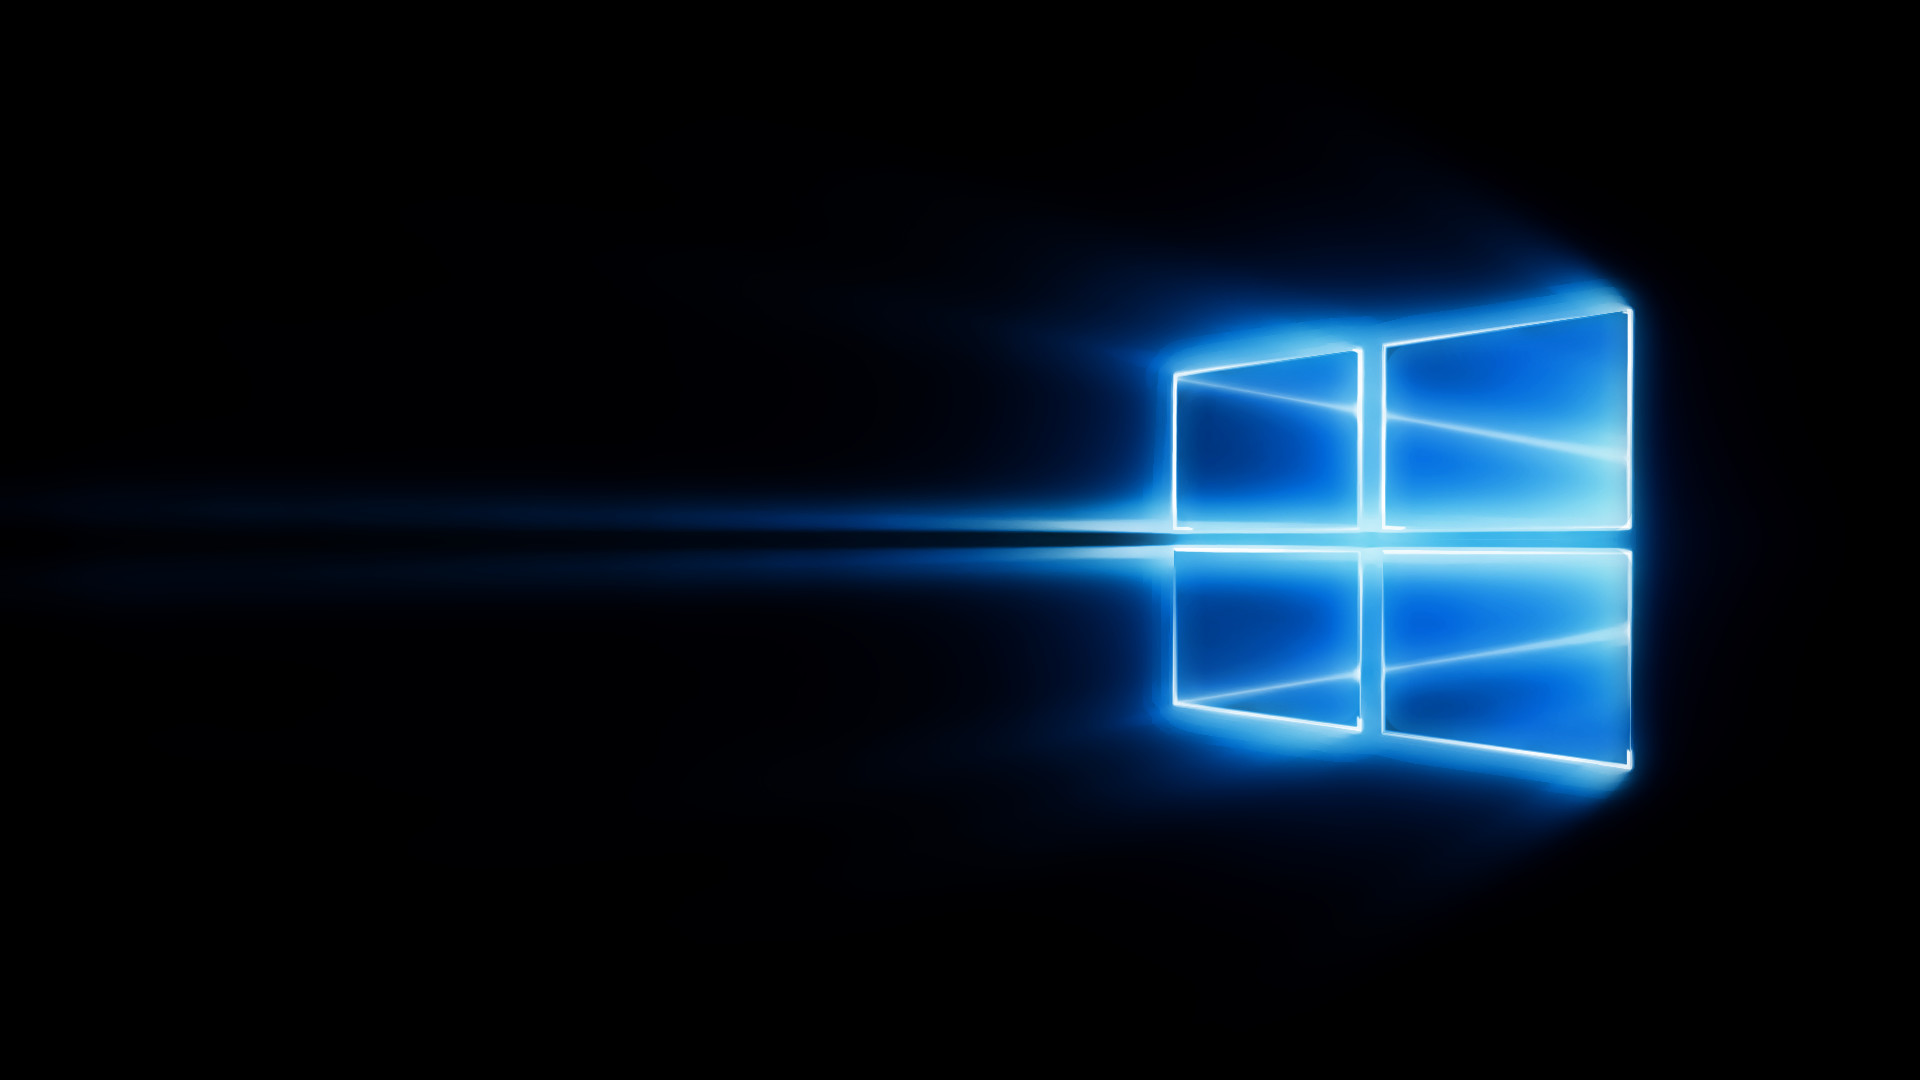 1920x1080 Windows 10 Background Wallpapers 2858 - HD Wallpapers Site